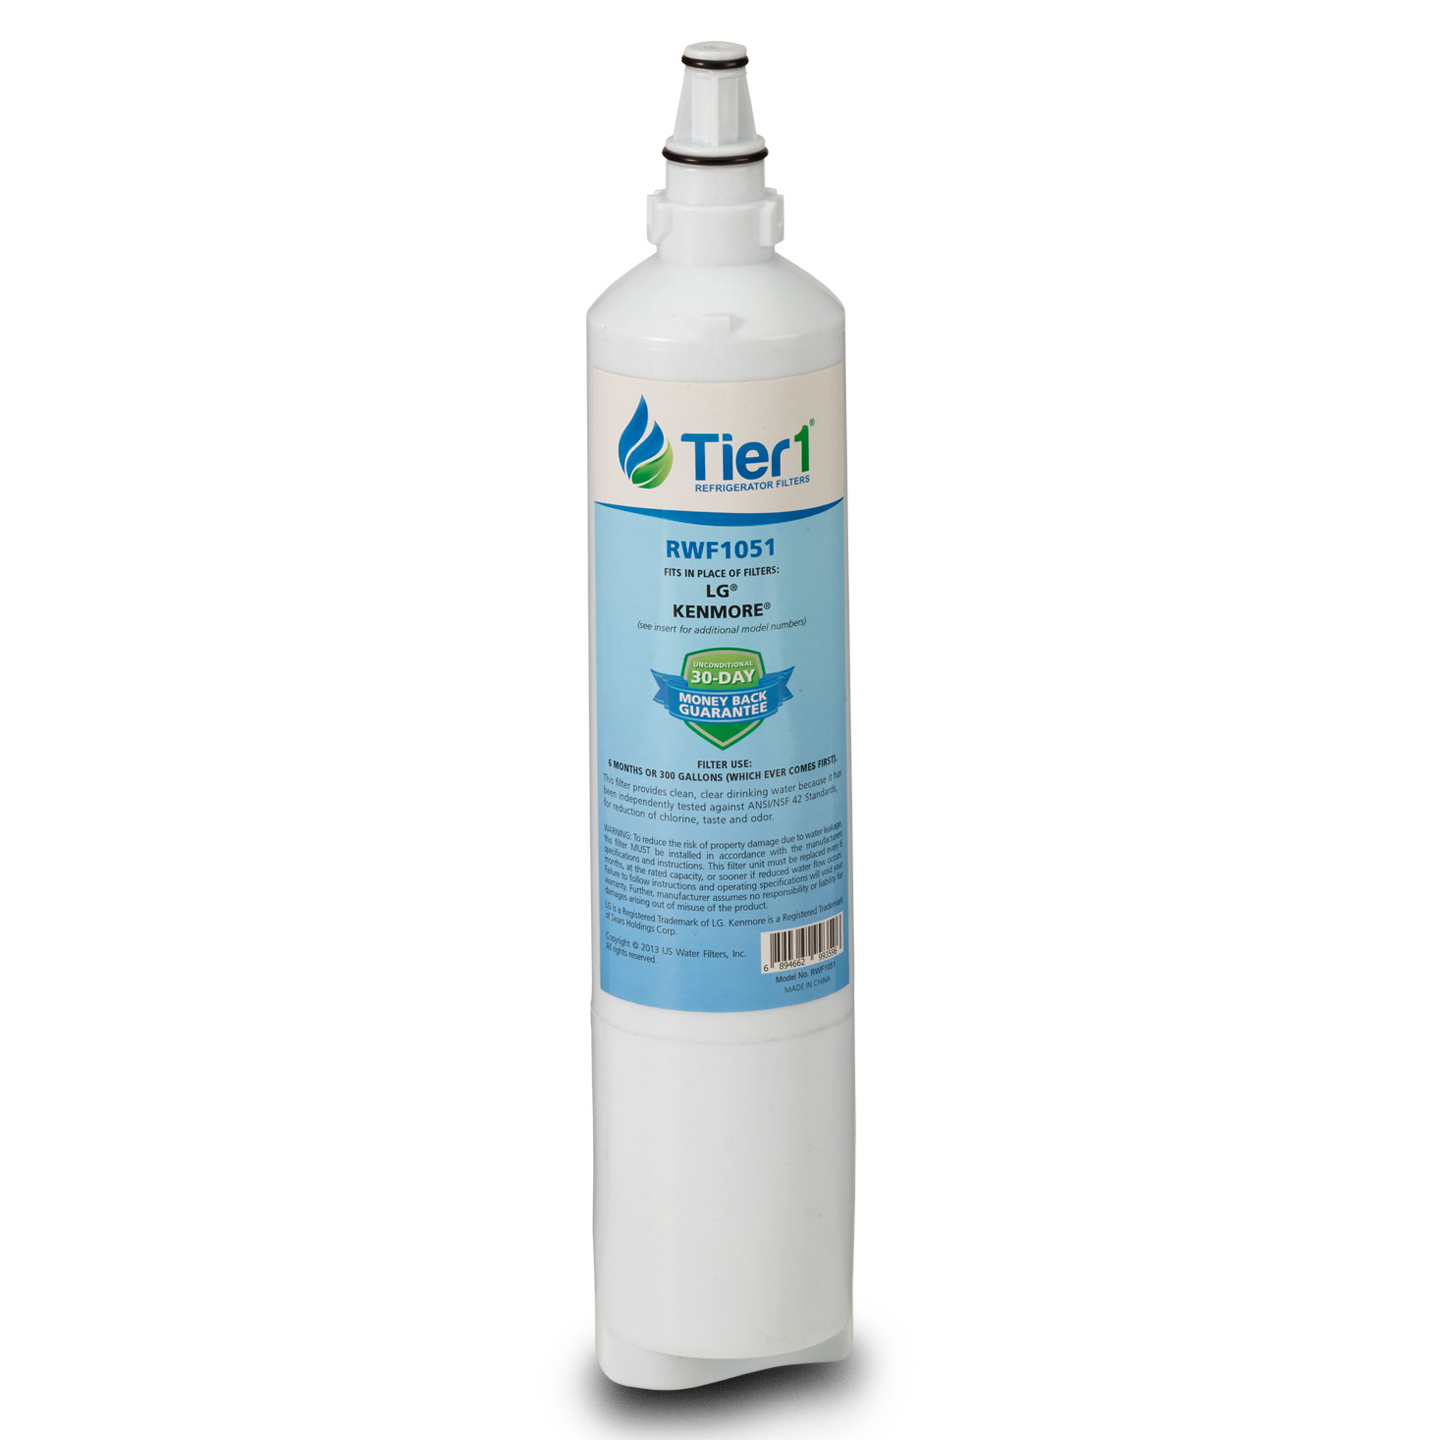 Tier1 LG 5231JA2006A / LT600P Refrigerator Water Filter Replacement Comparable TIER1-RWF1051